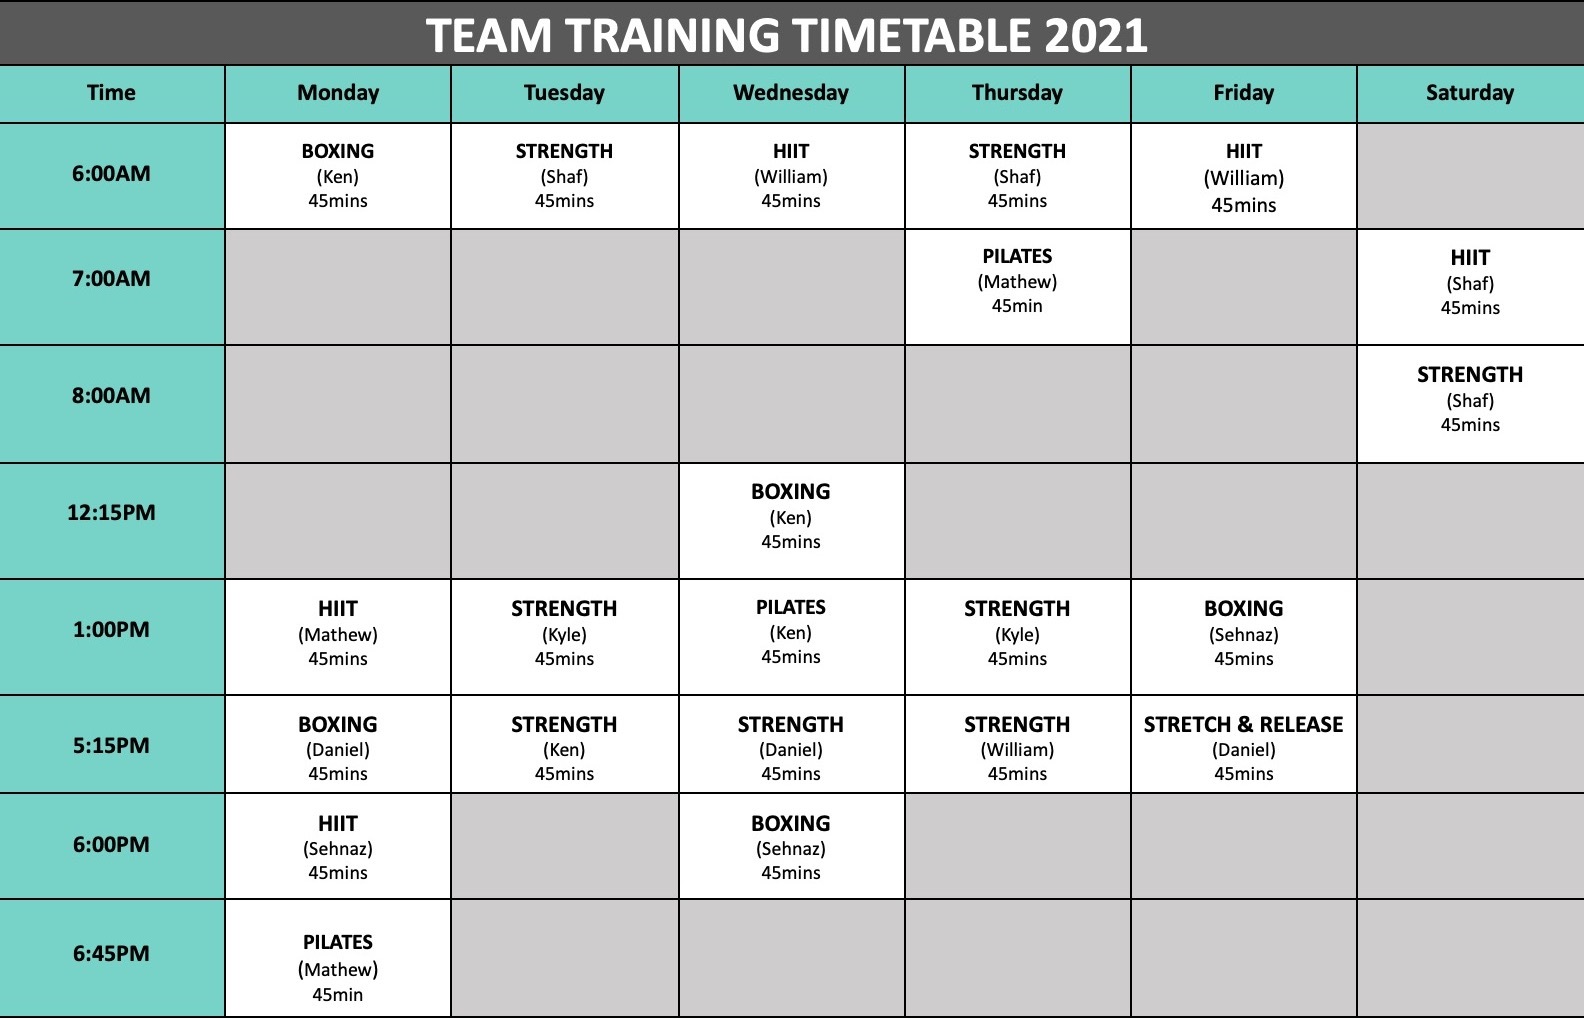 Team Training Timetable March 2021